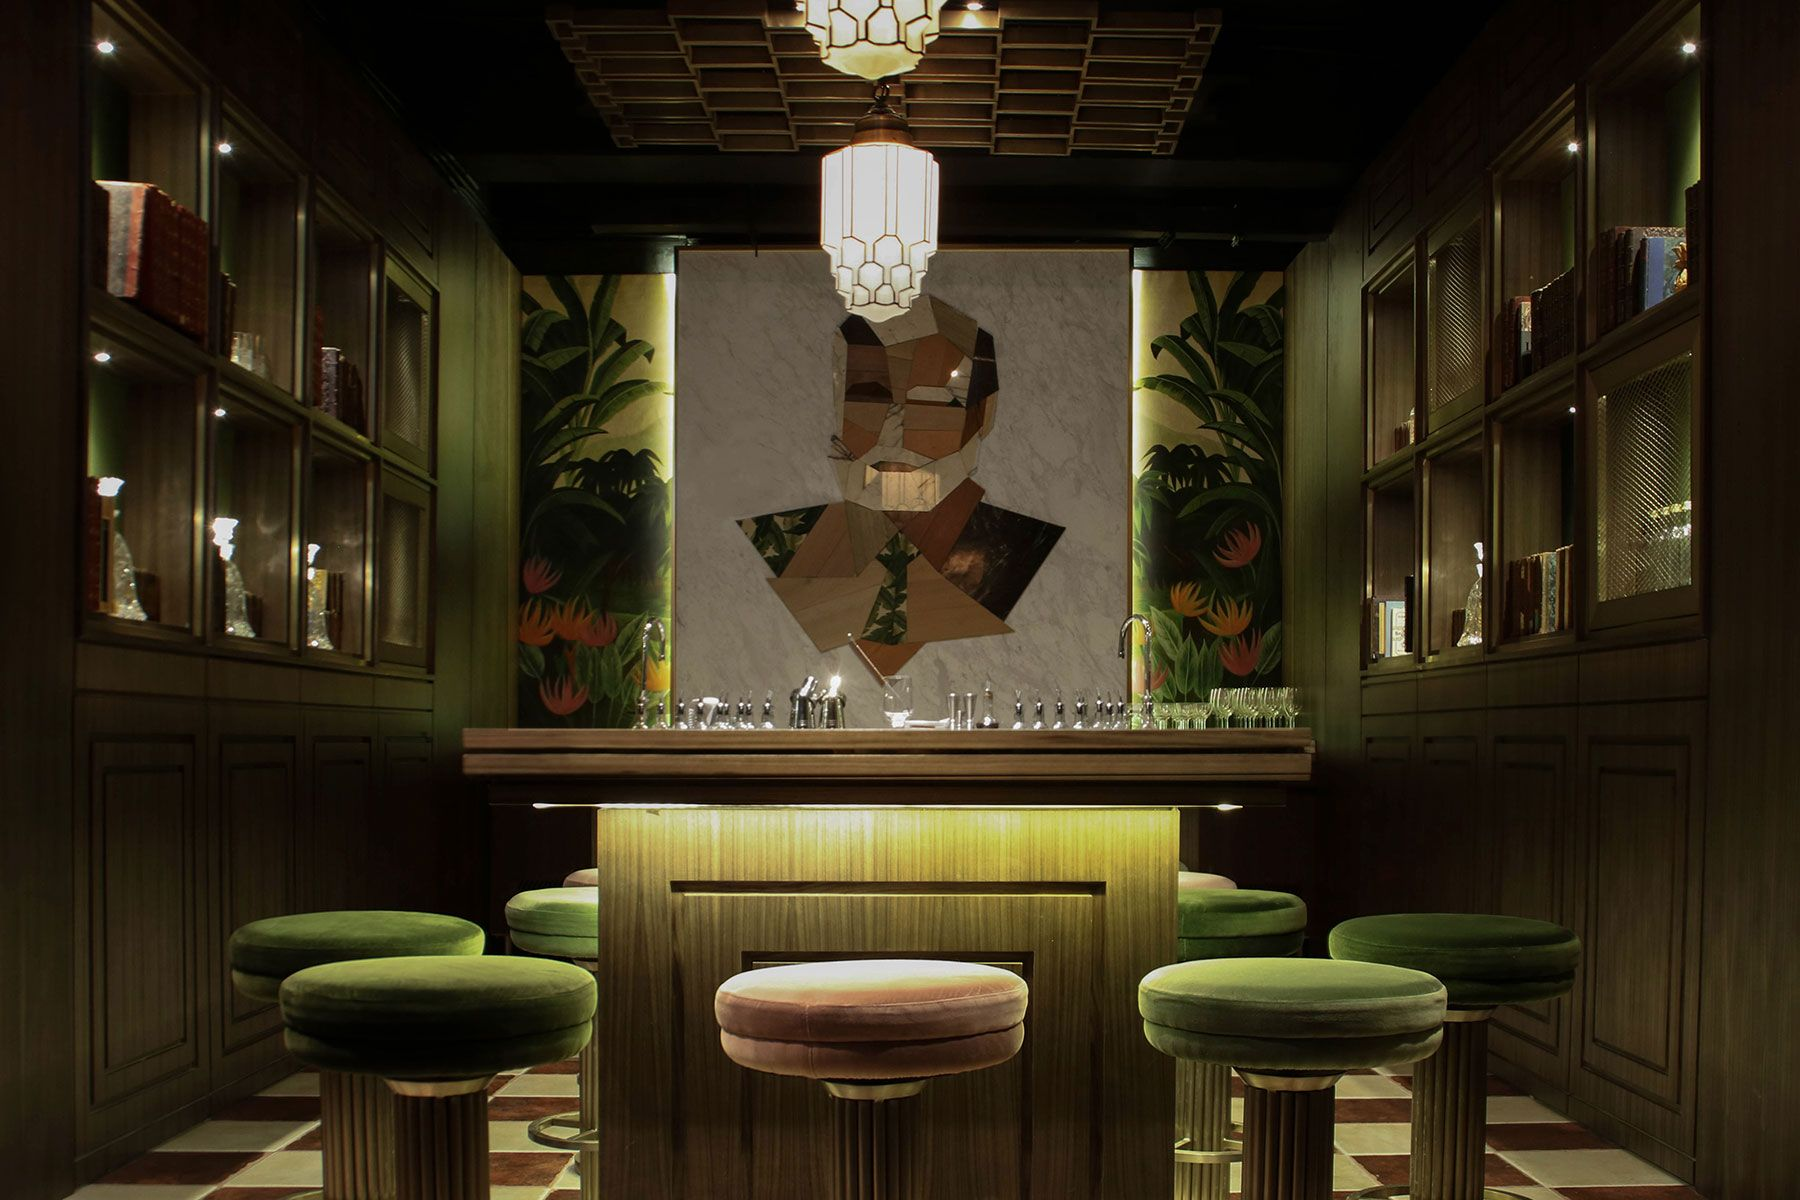 Only 3 Hong Kong Bars Made The Inaugural 51-100 List By Asia's 50 Best Bars 2021